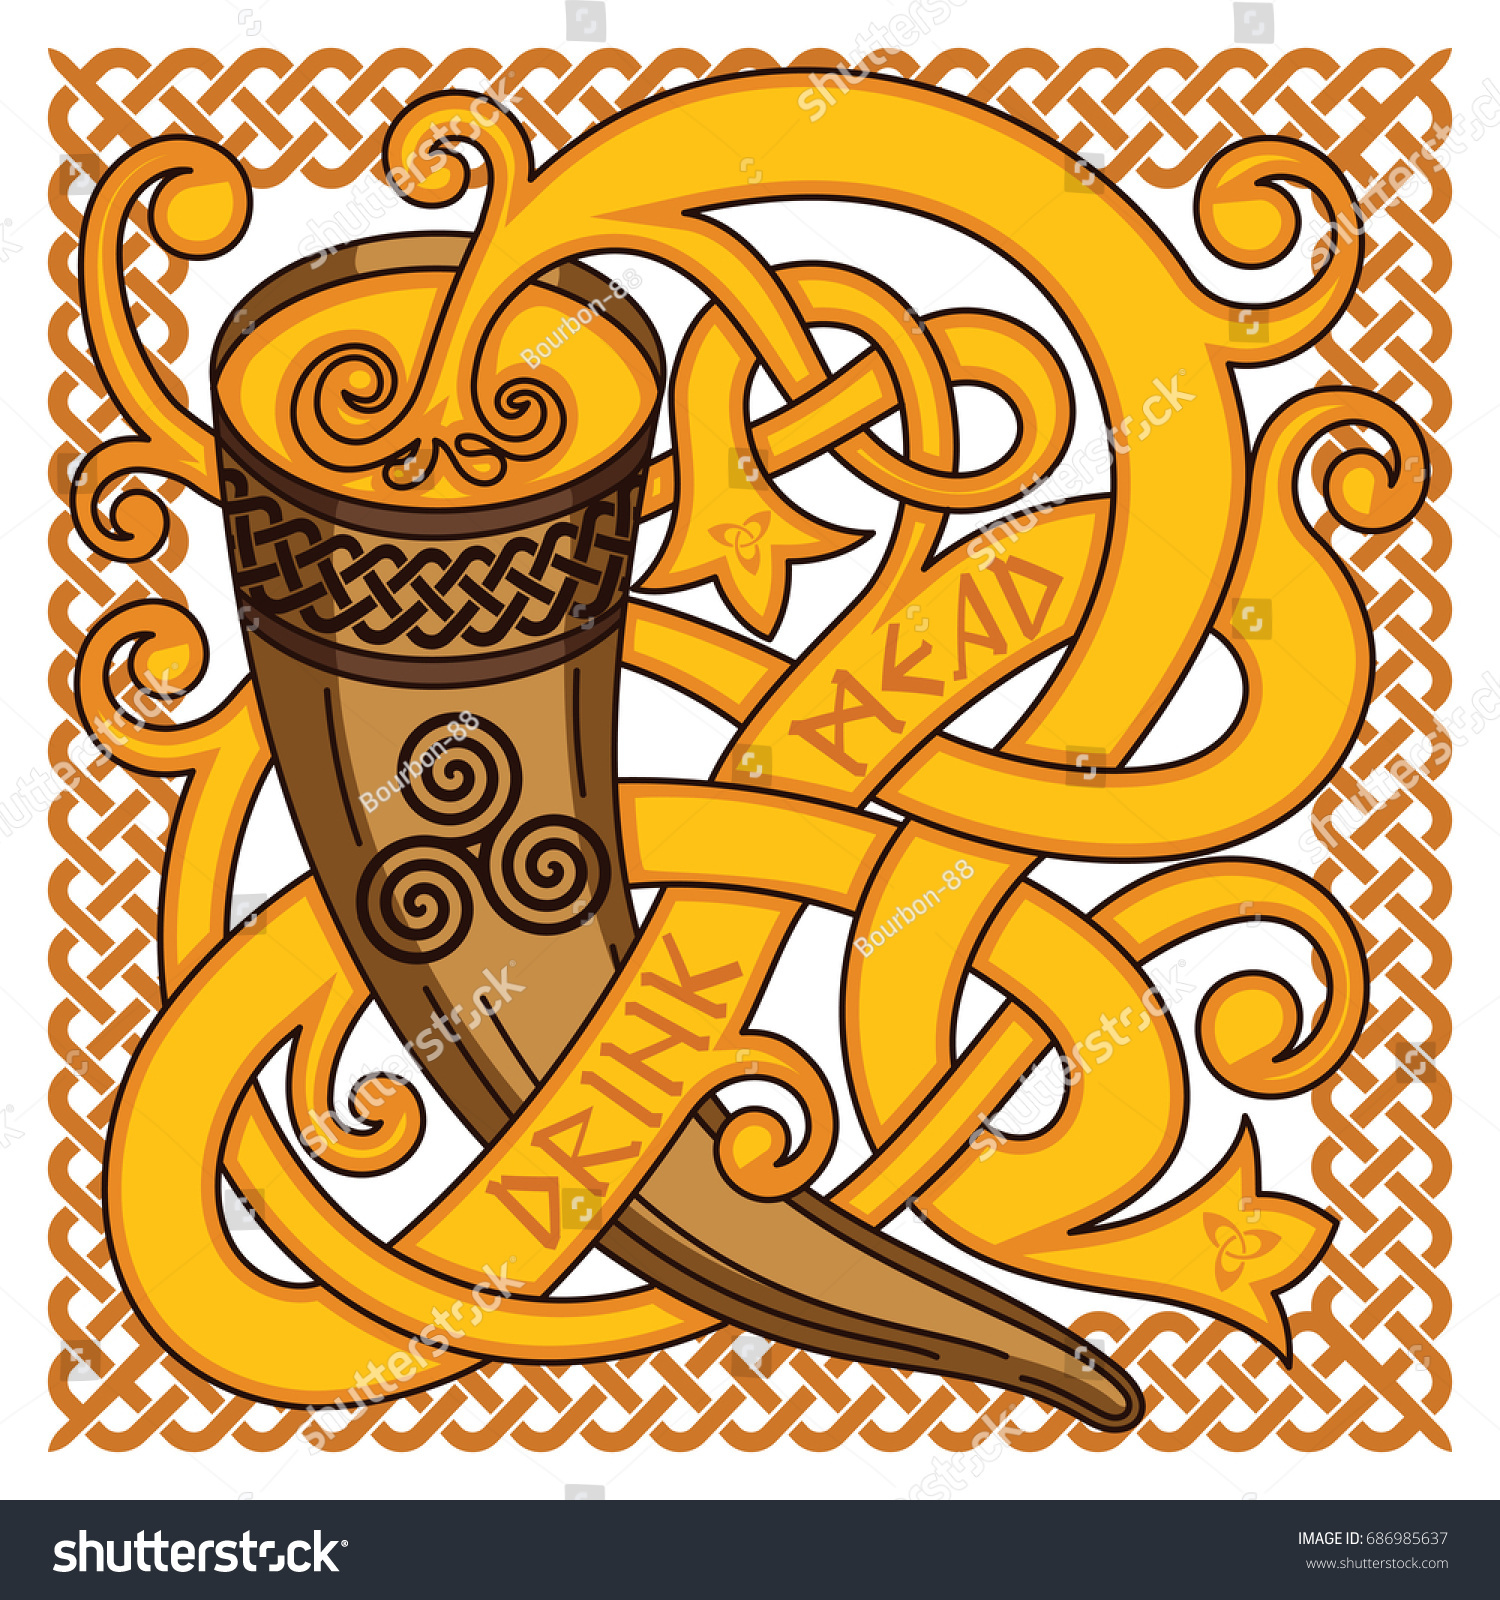 Celtic Scandinavian Design Drinking Horn With Mead And Woven Pattern Isolated On White